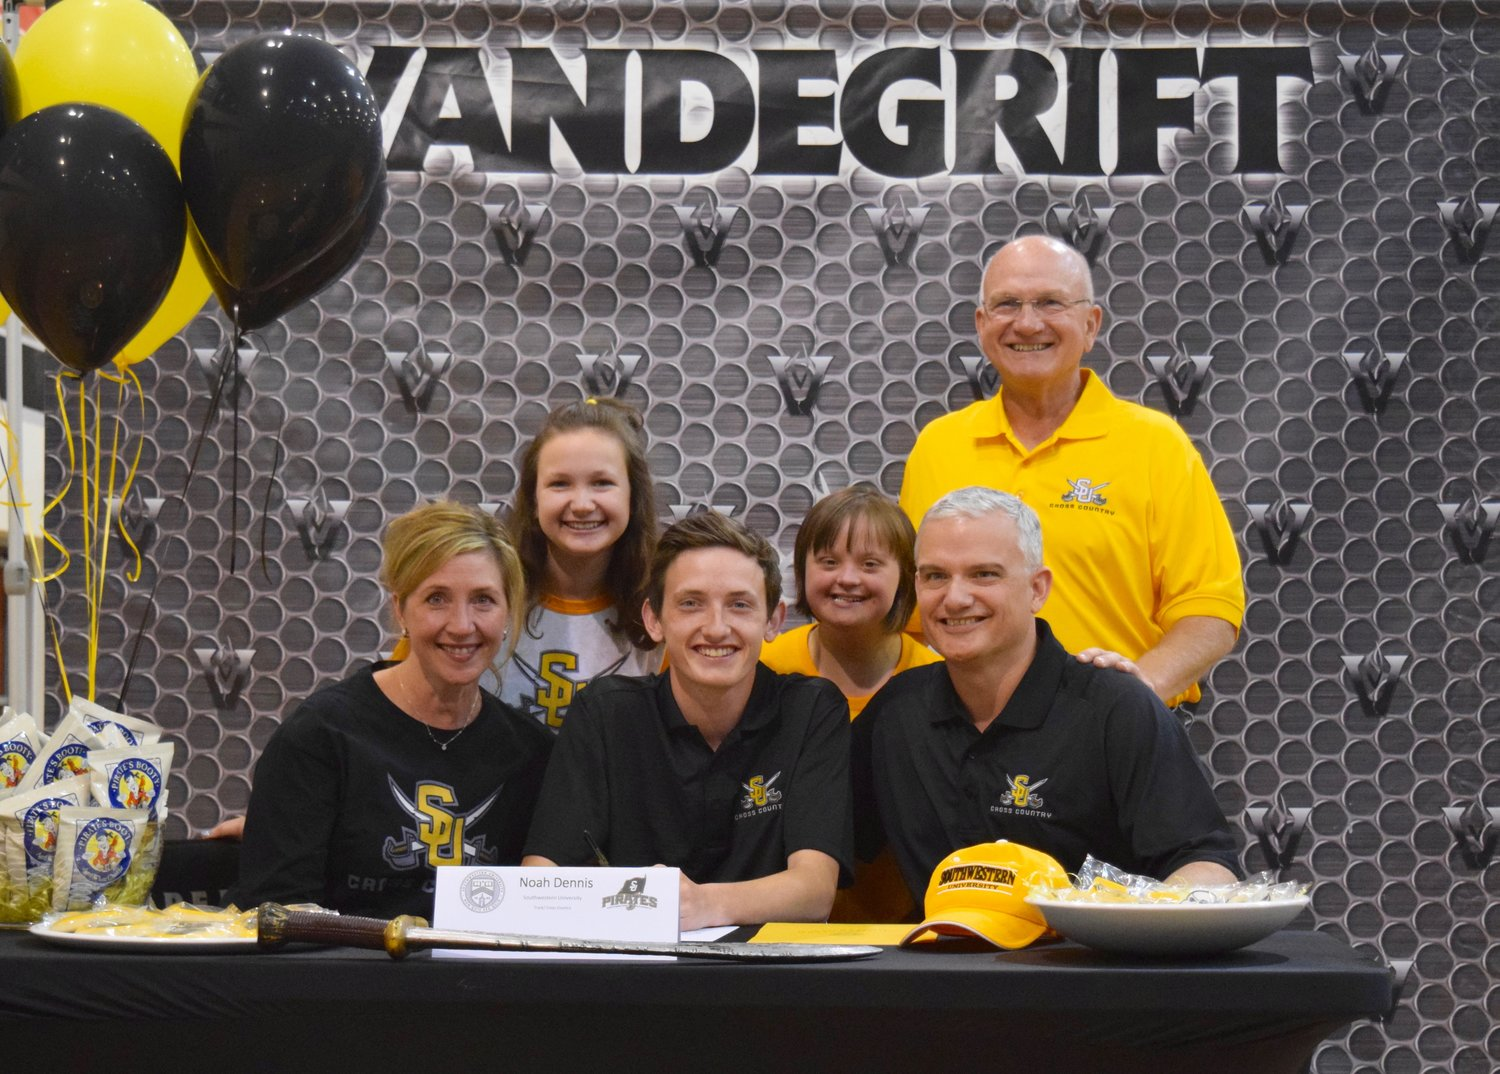 Noah Dennis signed on to run cross country/track at Southwestern University at a signing day celebration Friday morning at Vandegrift High School.